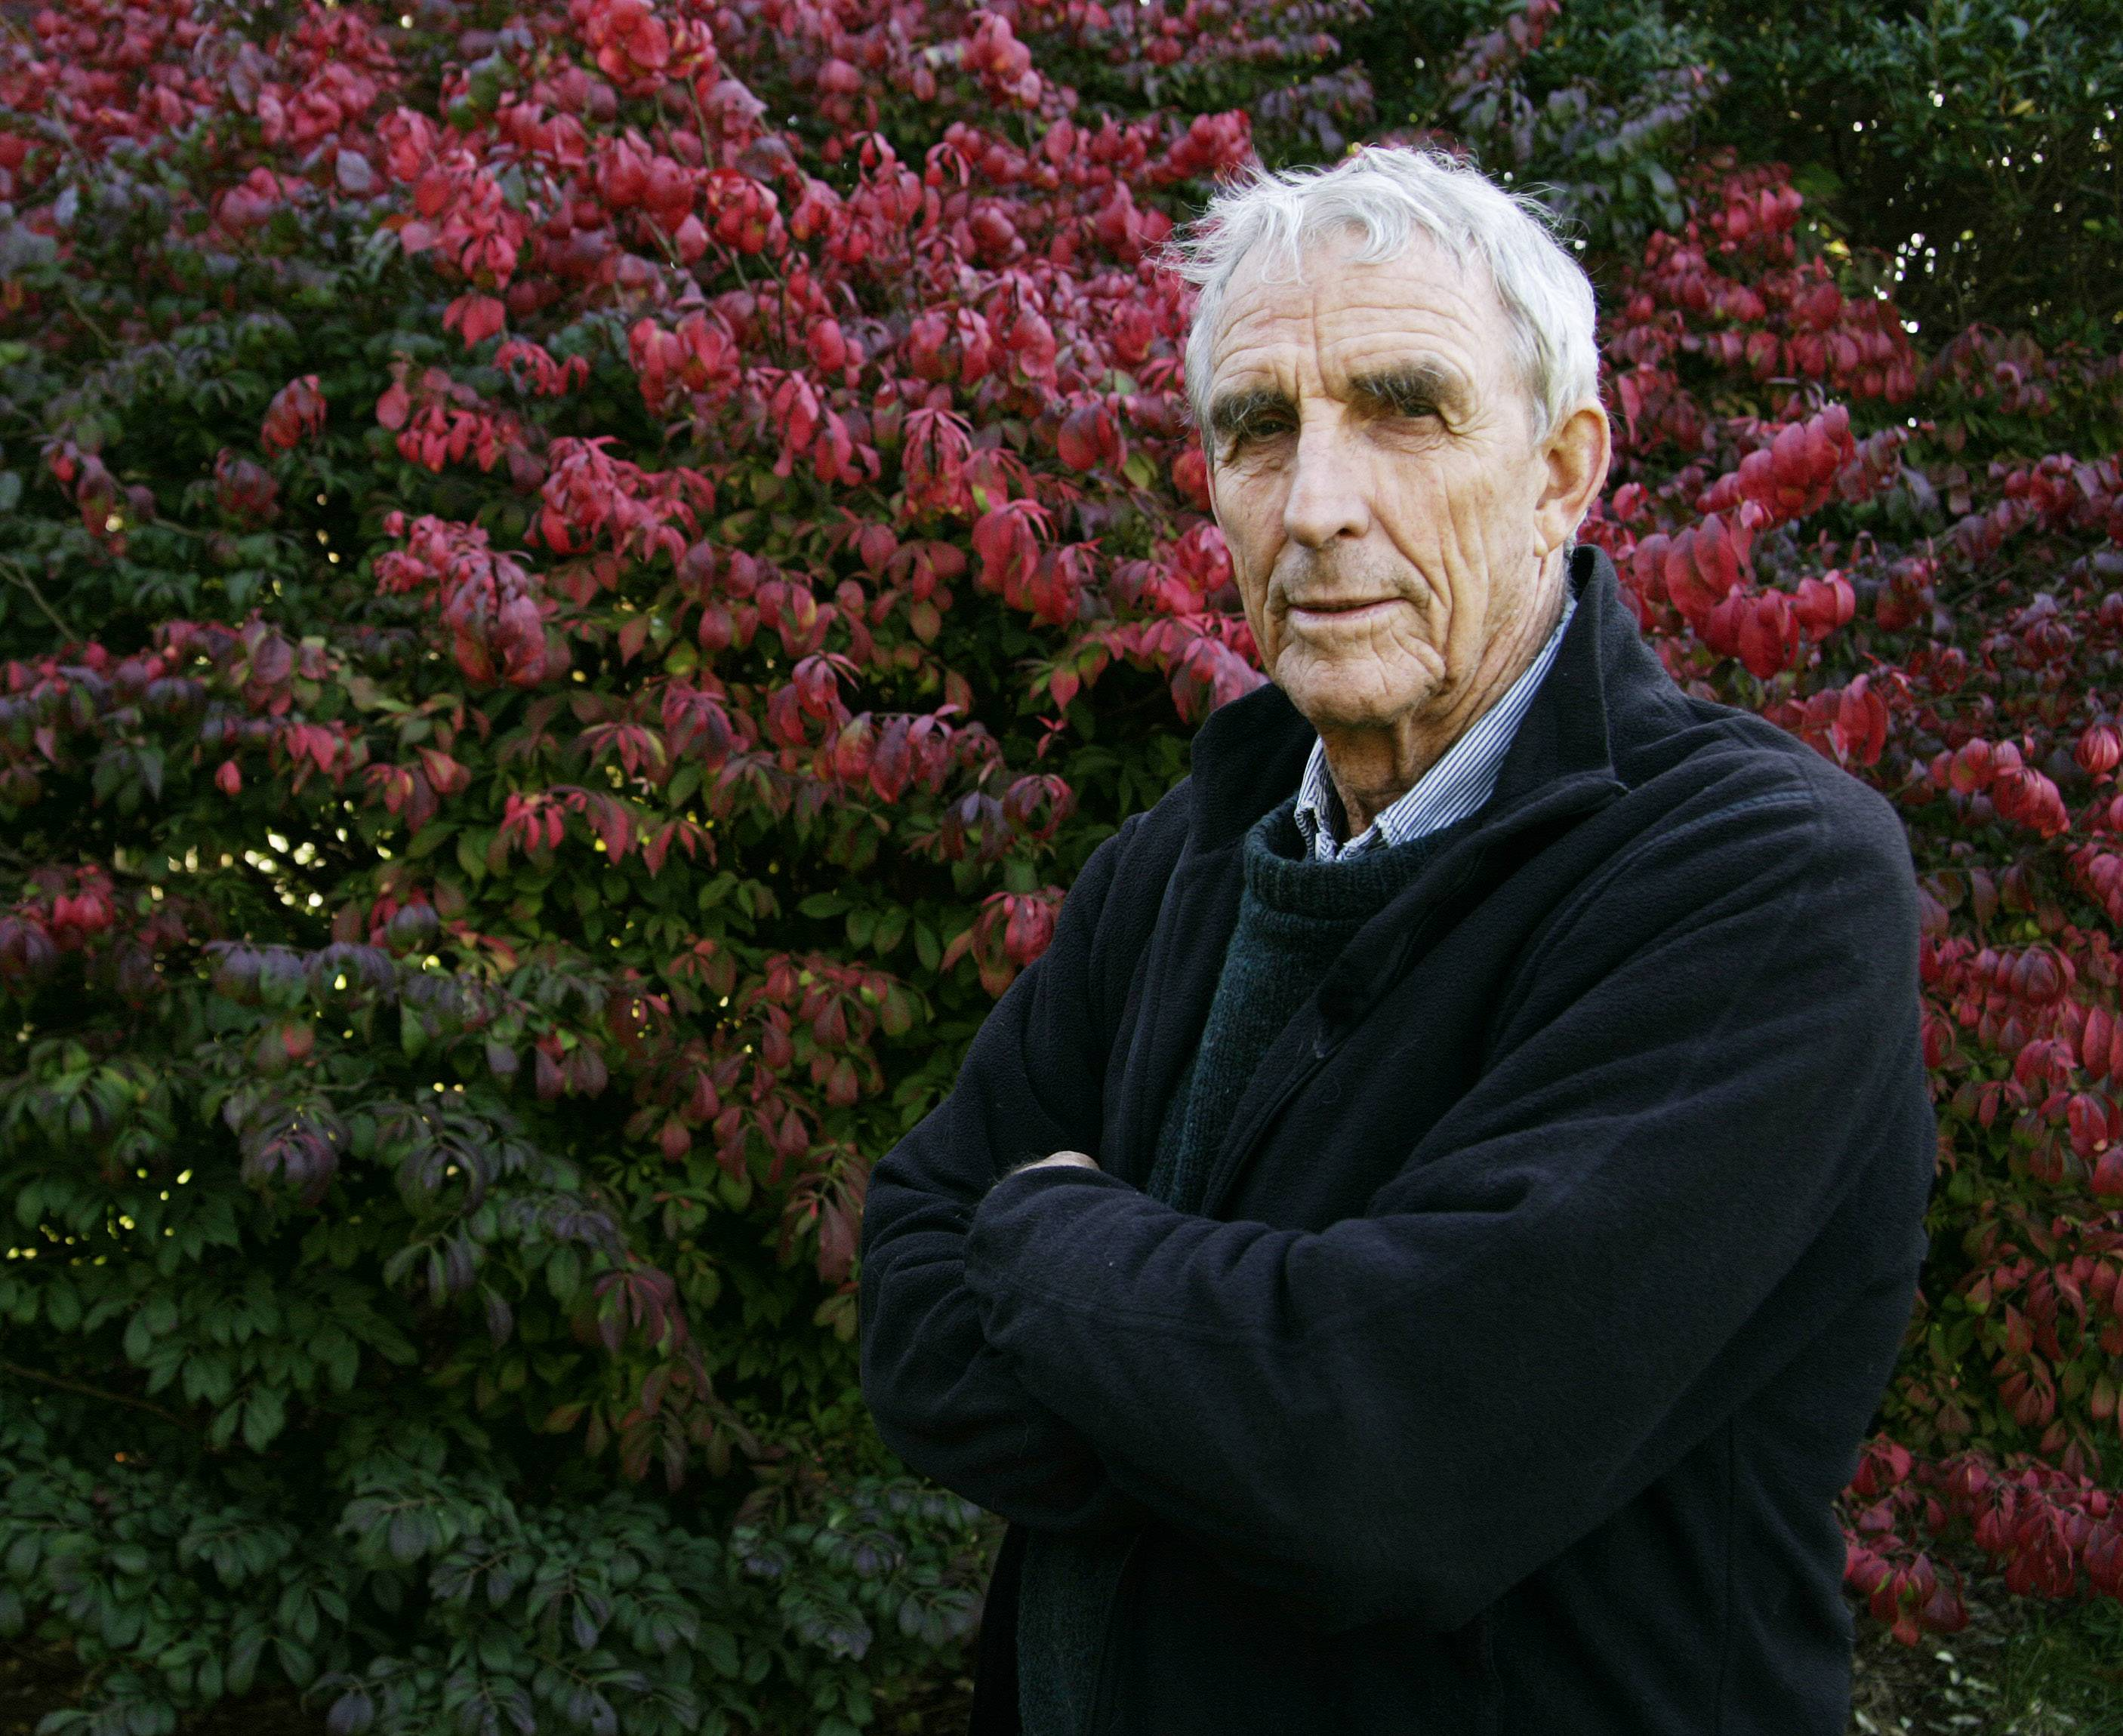 Writer Peter Matthiessen stands in the yard of his house in Sagaponack, N.Y. in this Oct. 28, 2004, file photo. Matthiessen, award-winning author of more than 30 books, world-renowned naturalist, explorer, Buddhist teacher, and political activist, died Saturday.